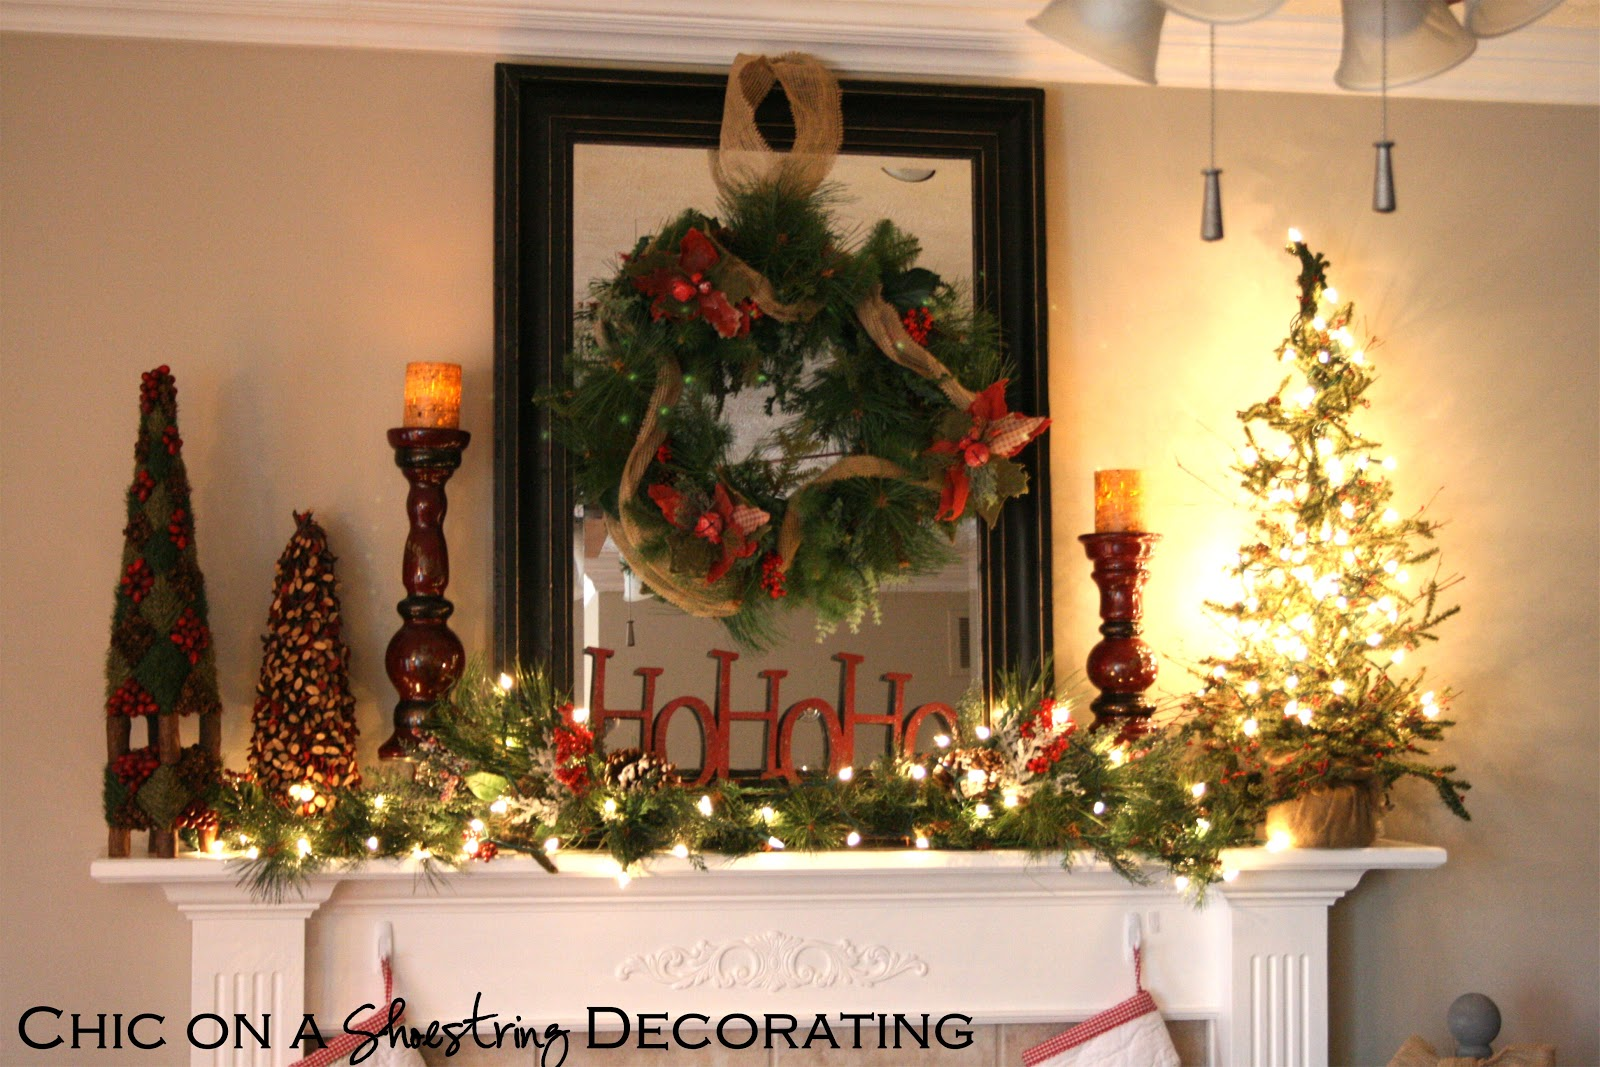 Decorating A Mantel For Christmas chic on a shoestring decorating: rustic christmas mantel